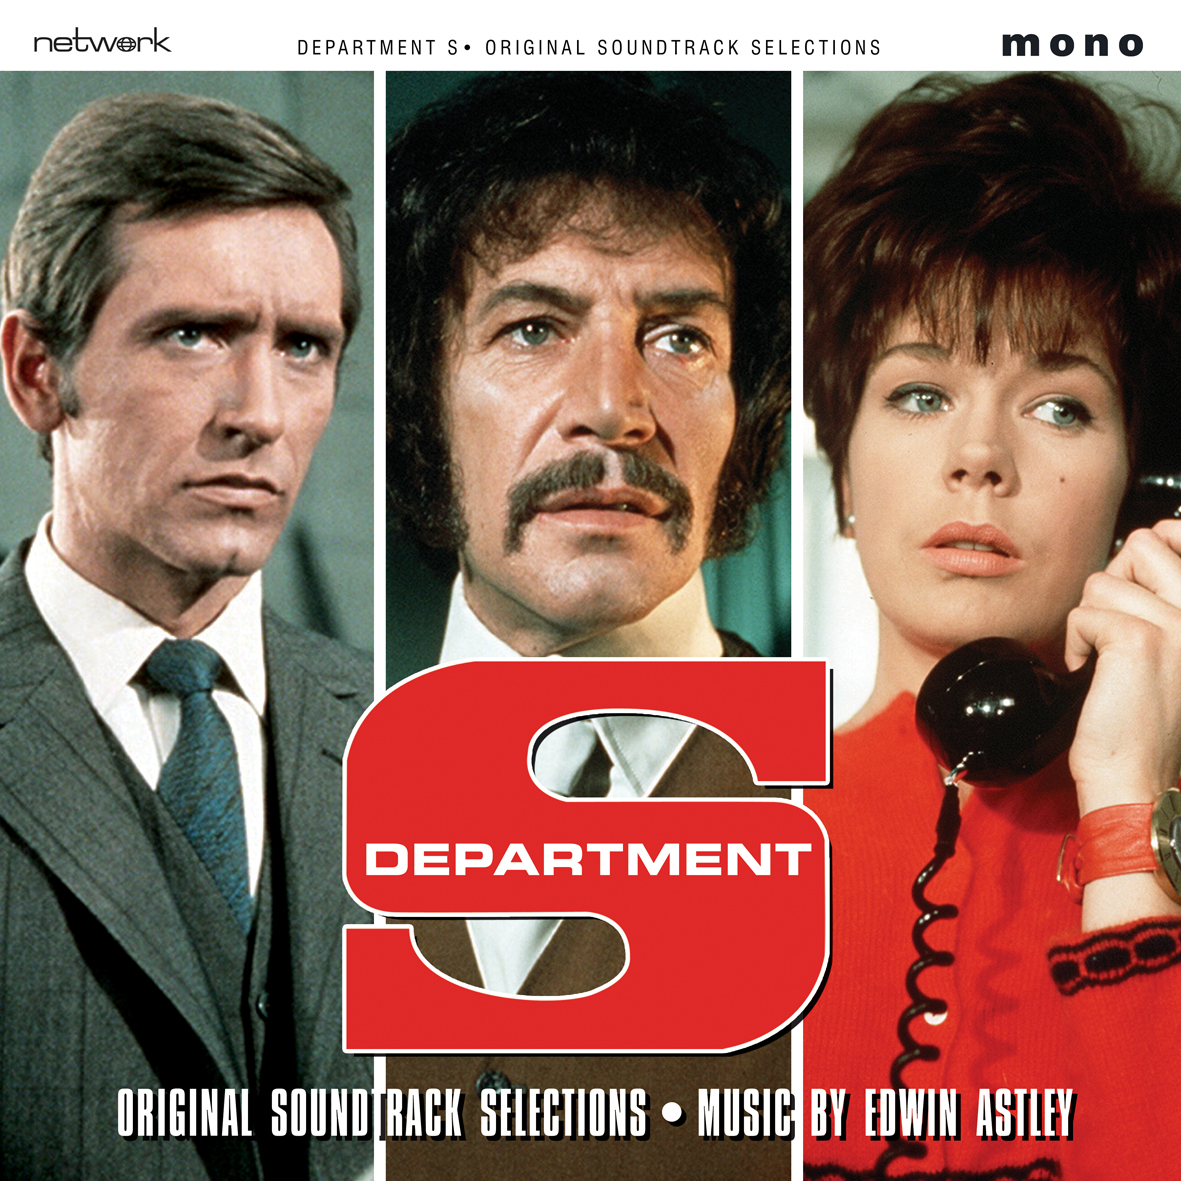 Double O Section Network To Release Itc Spy Soundtracks